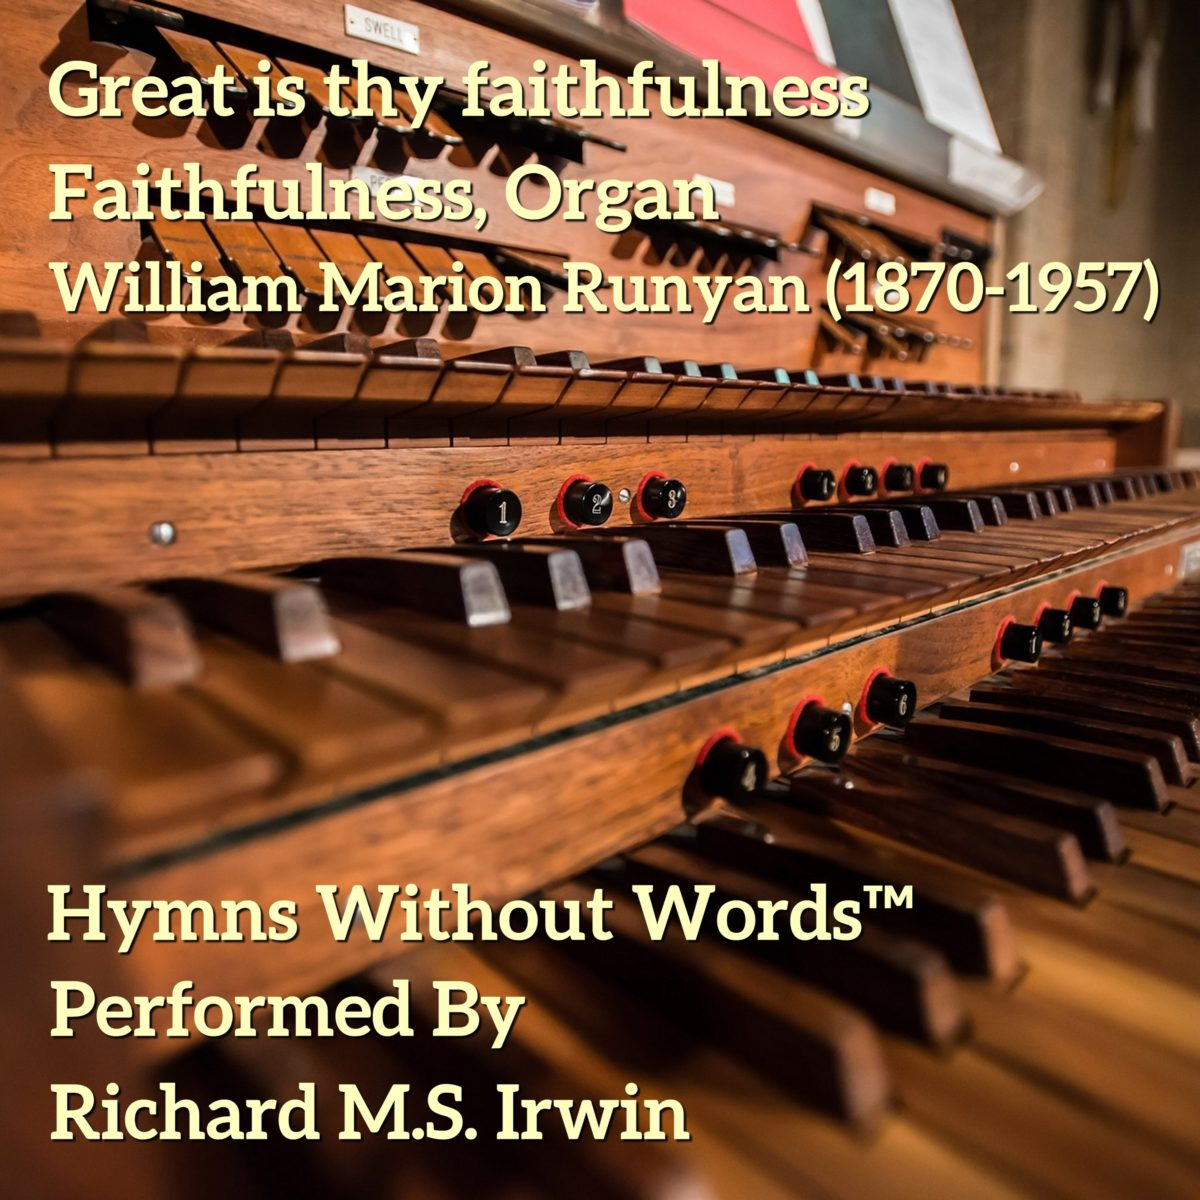 Great Is Thy Faithfulness (Runyan, Organ, 3 Verses)